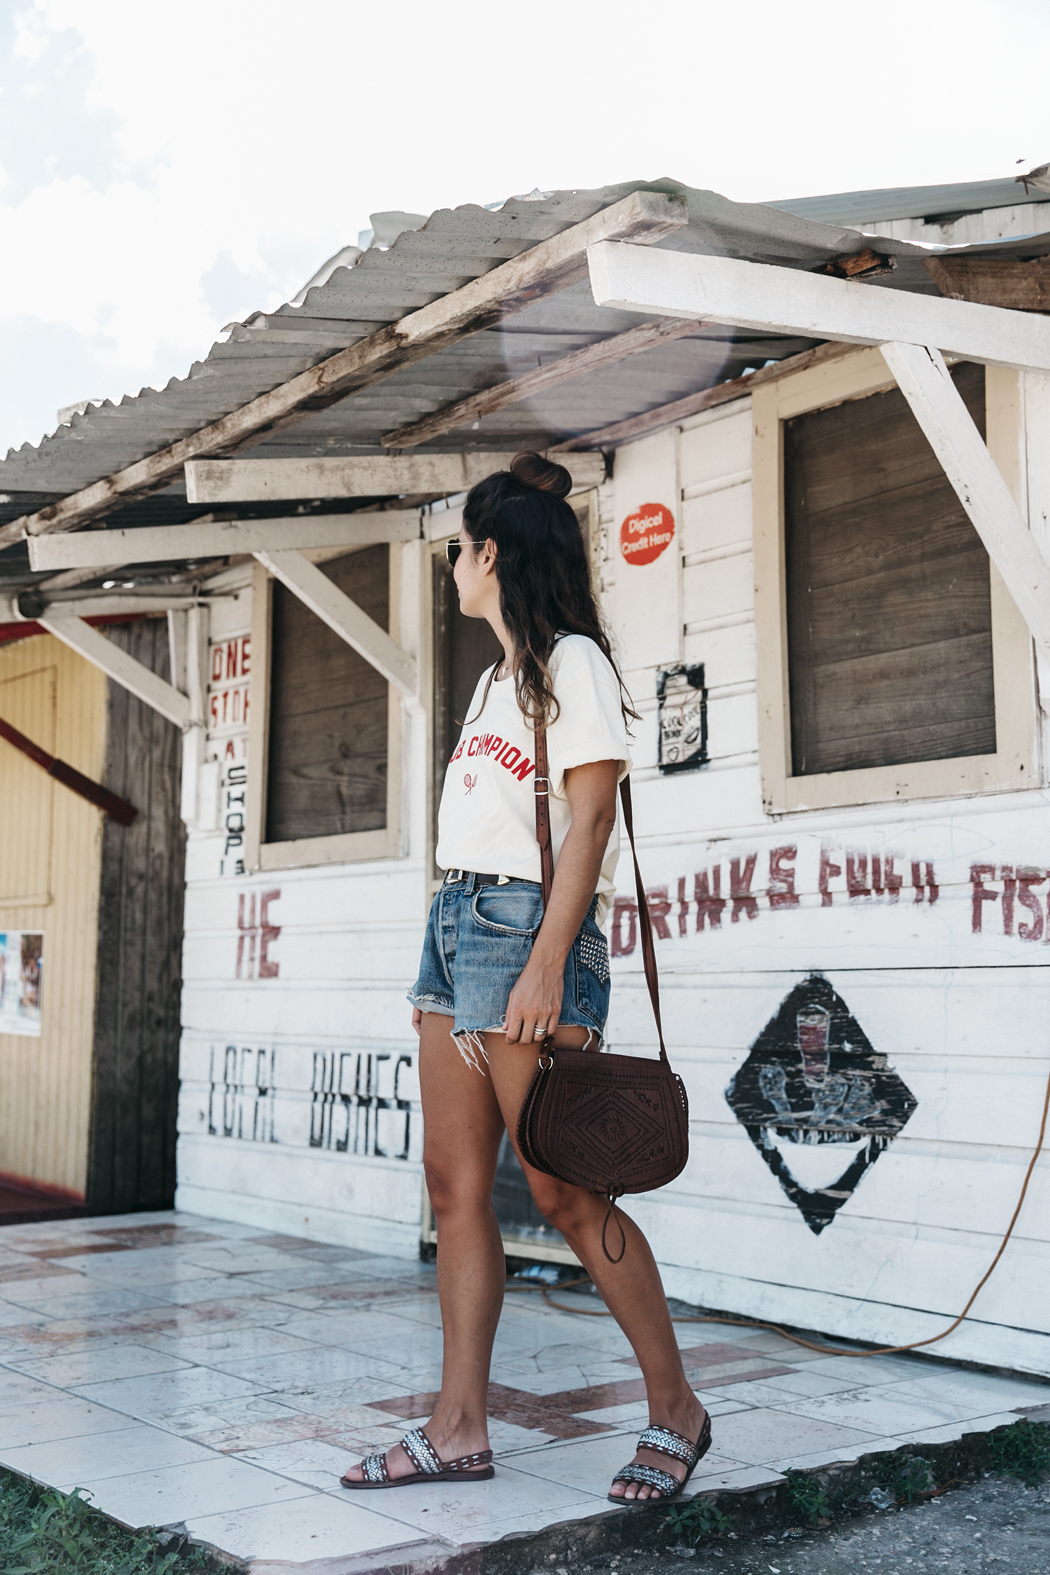 Jamica-Sugar_Cane_Field-Levis-Straw_Hat-Reebok_Tee-Outfit-Summer-Collage_on_The_Road-Bamboo_Walls-84